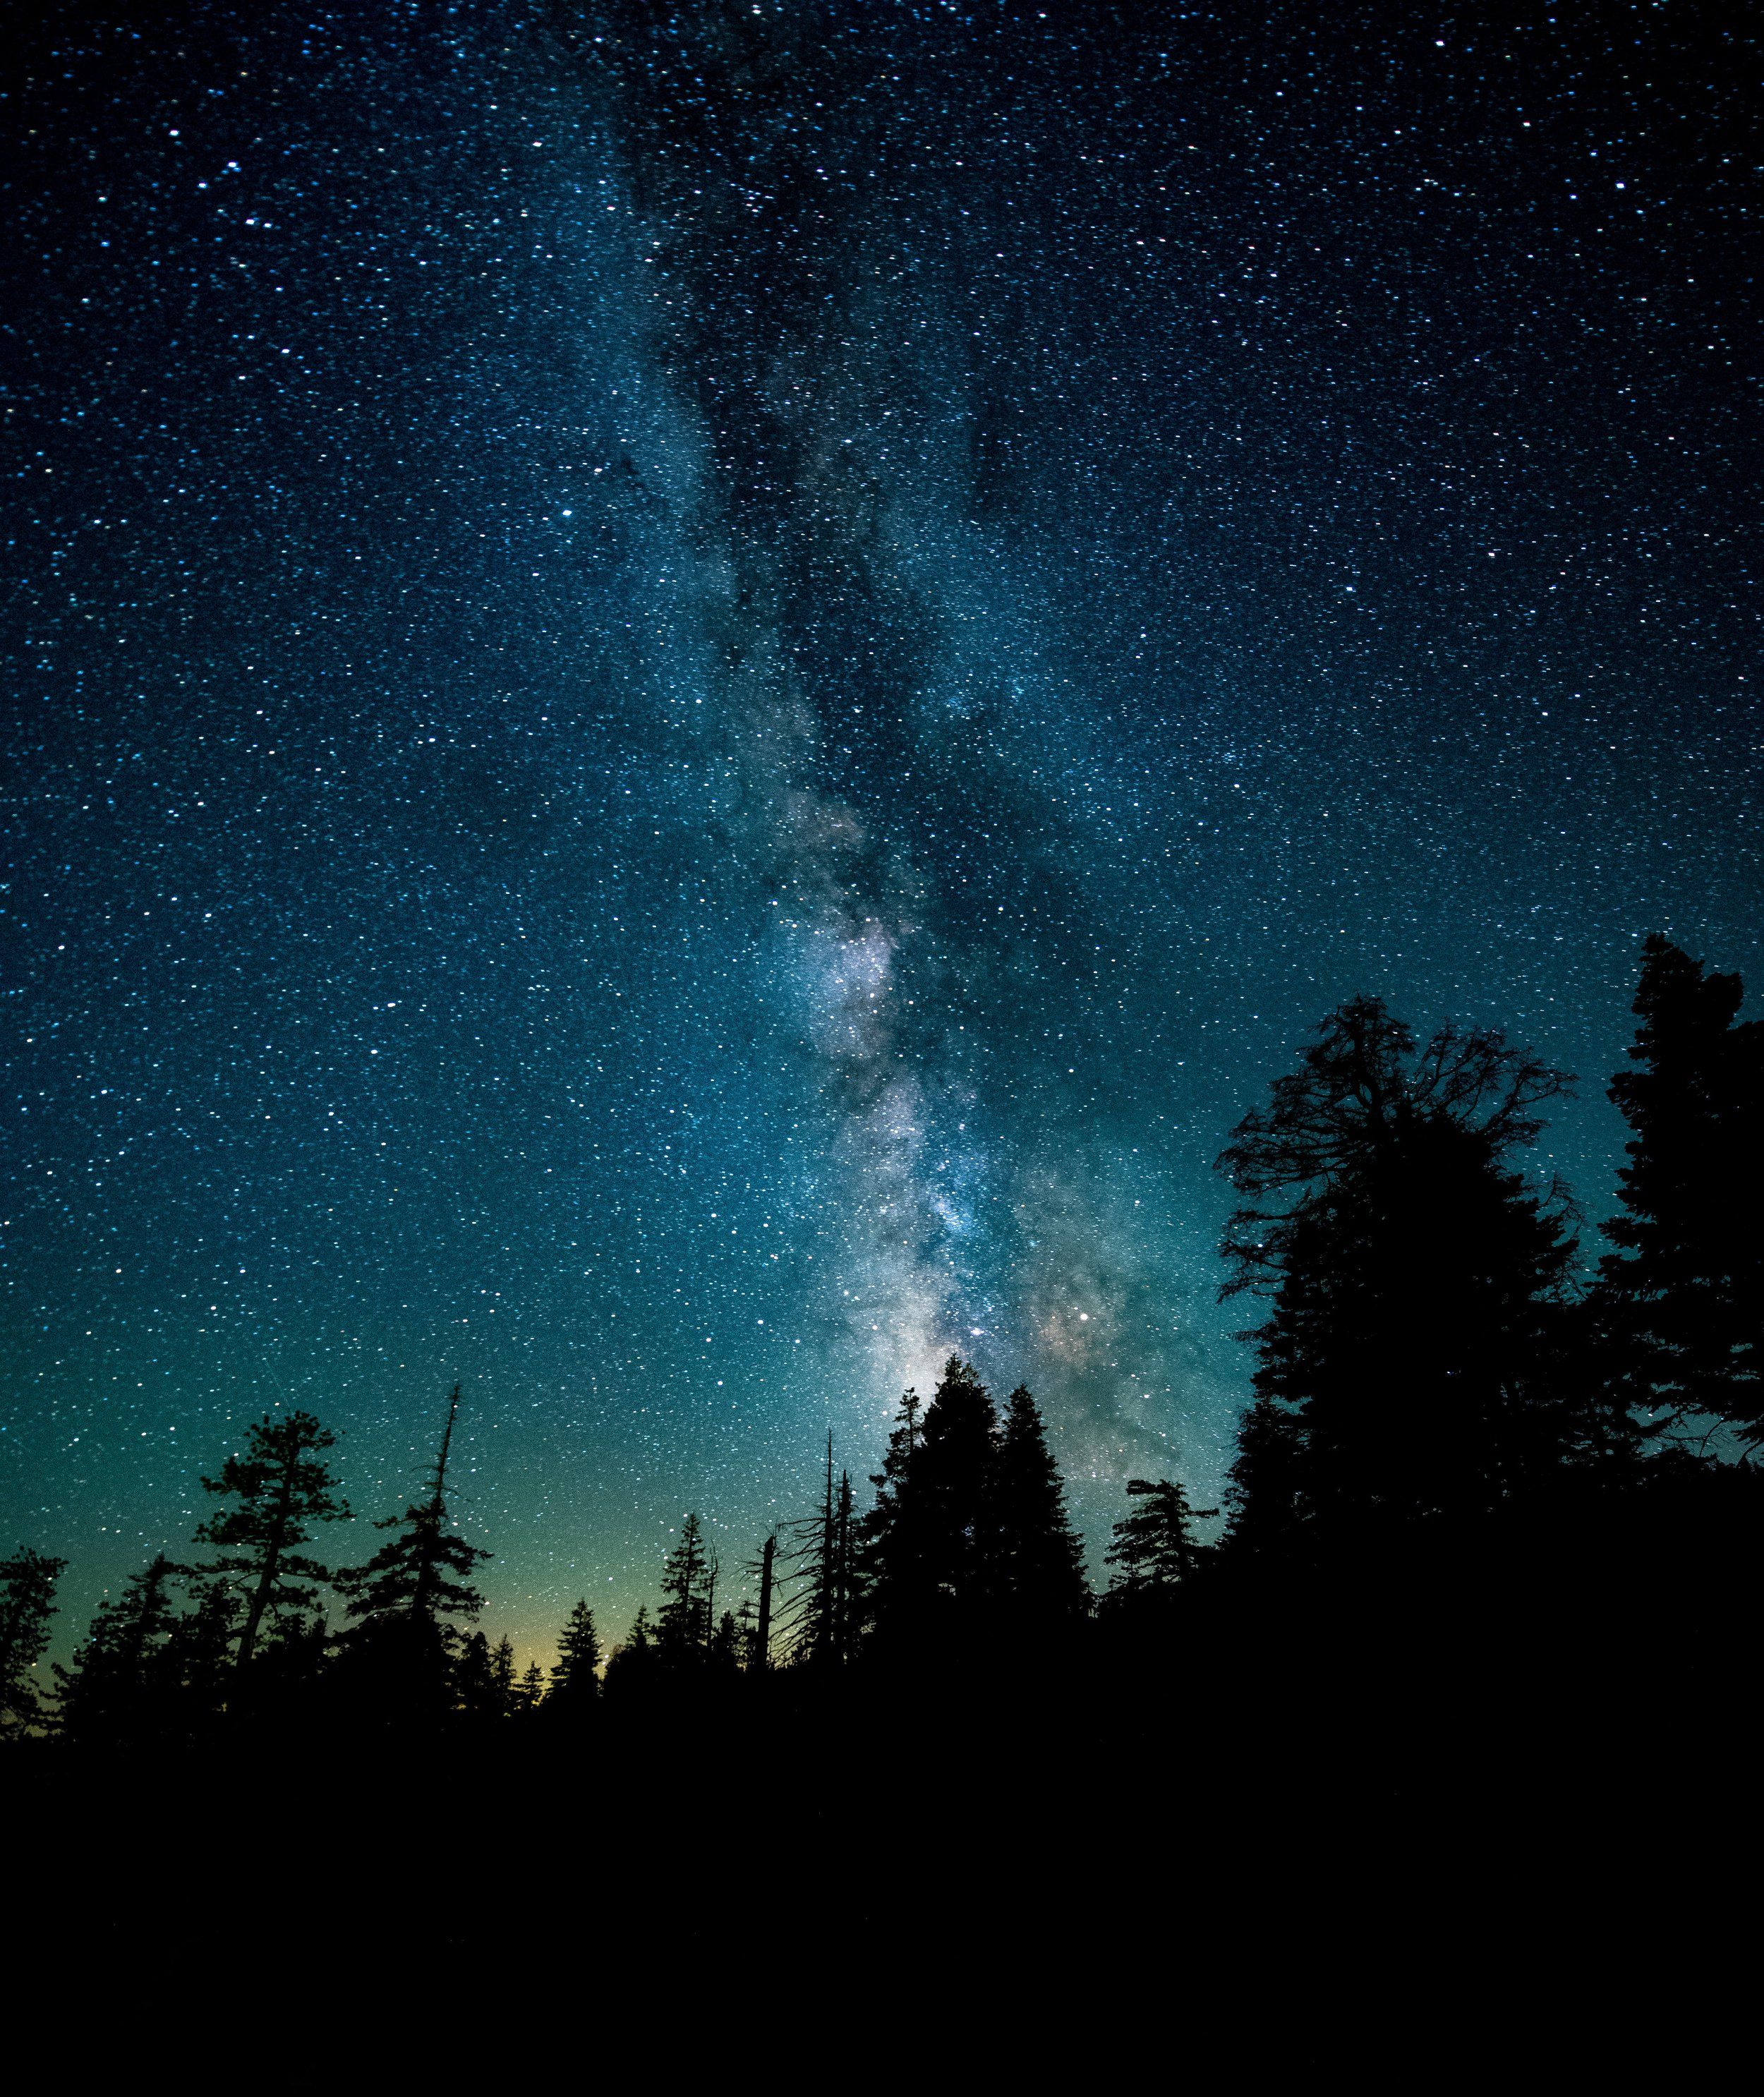 Night sky in Yosemite, California. Photo by Casey Horner